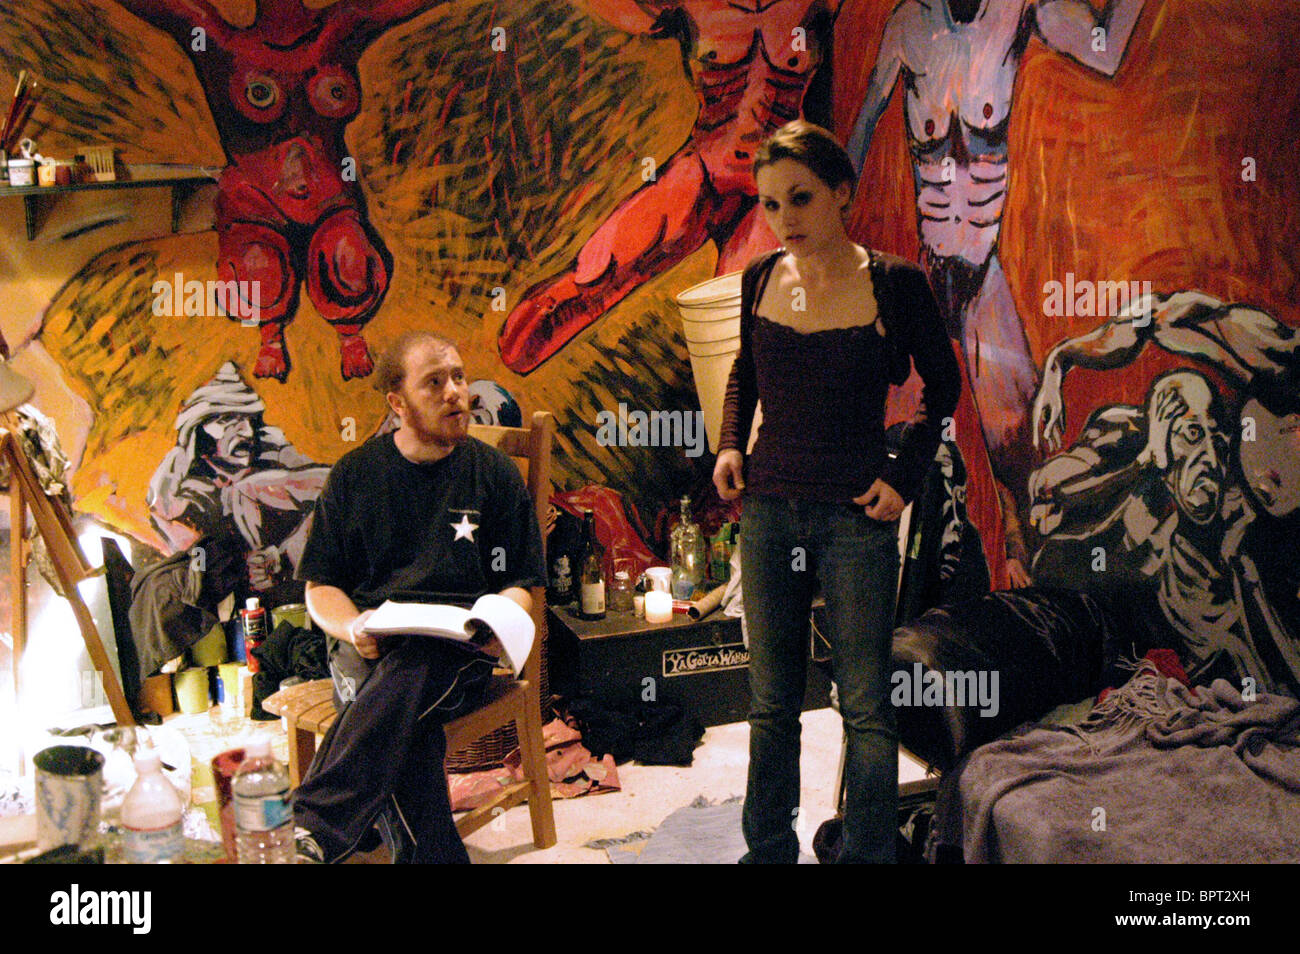 JOEL MILLER & RACHEL MINER THE STILL LIFE; (2007) - Stock Image